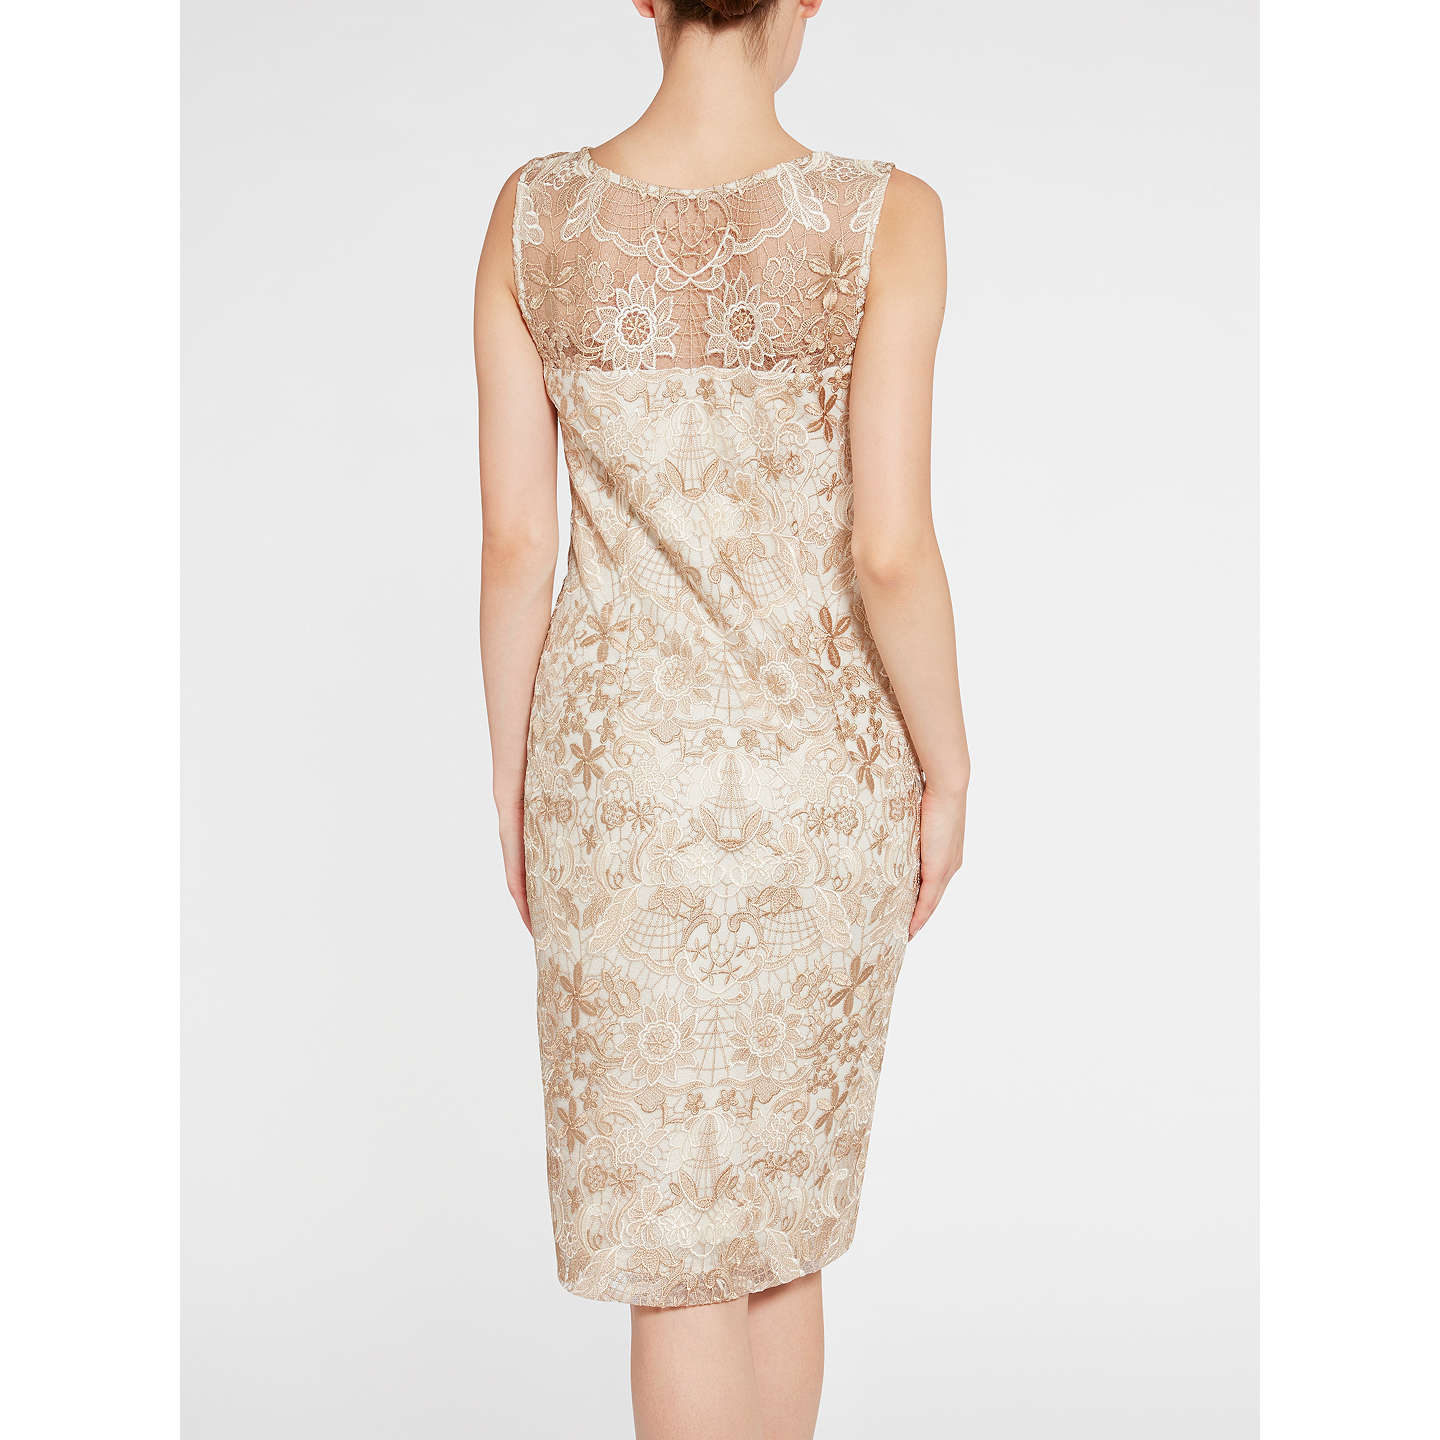 BuyGina Bacconi Tonal Floral Mesh Dress, Spring Butter, 8 Online at johnlewis.com